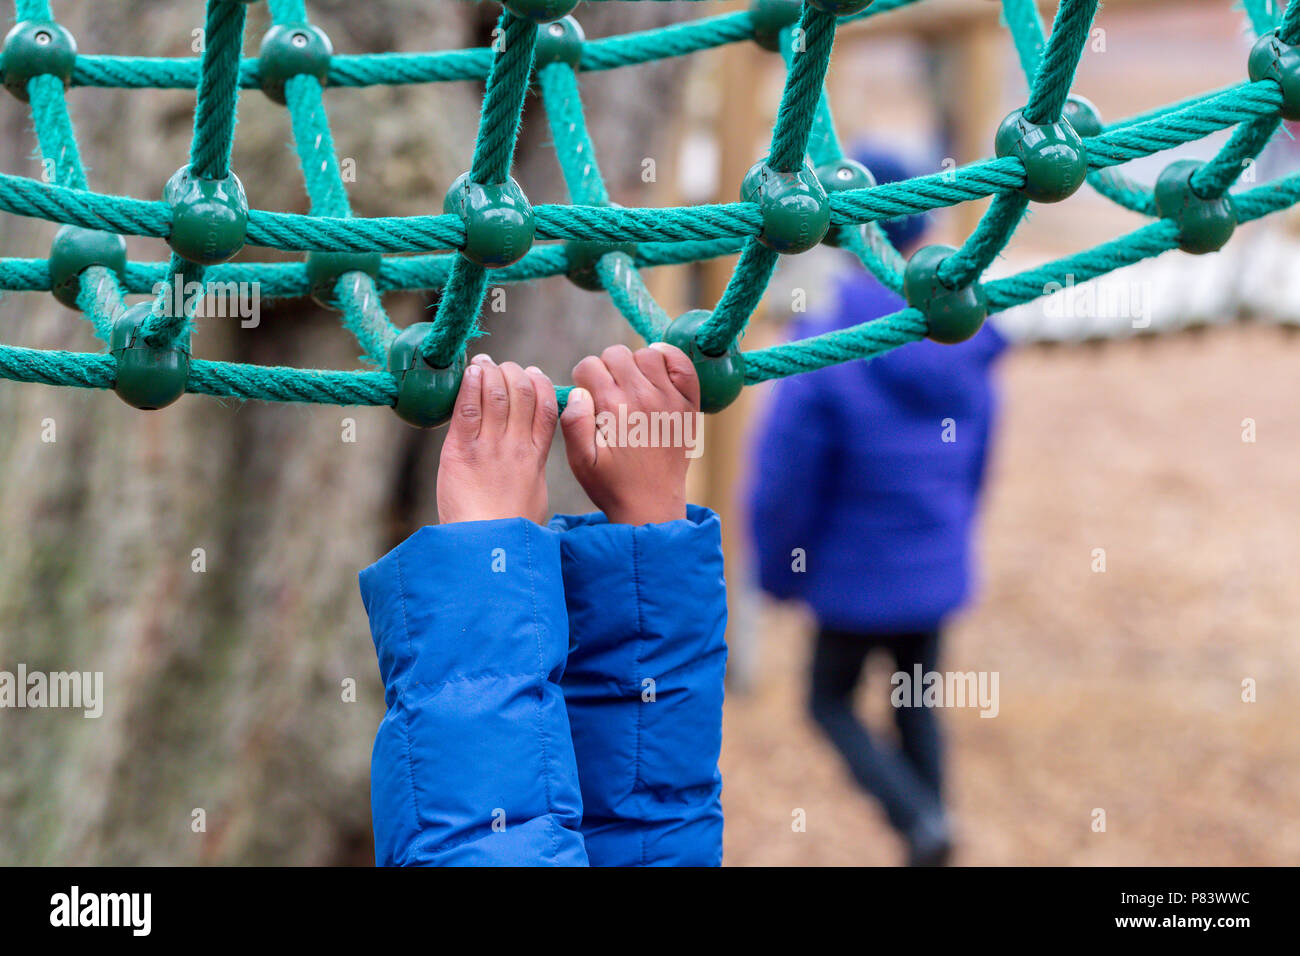 A young child playing on rope climbing equipment in Battersea Park, London - Stock Image